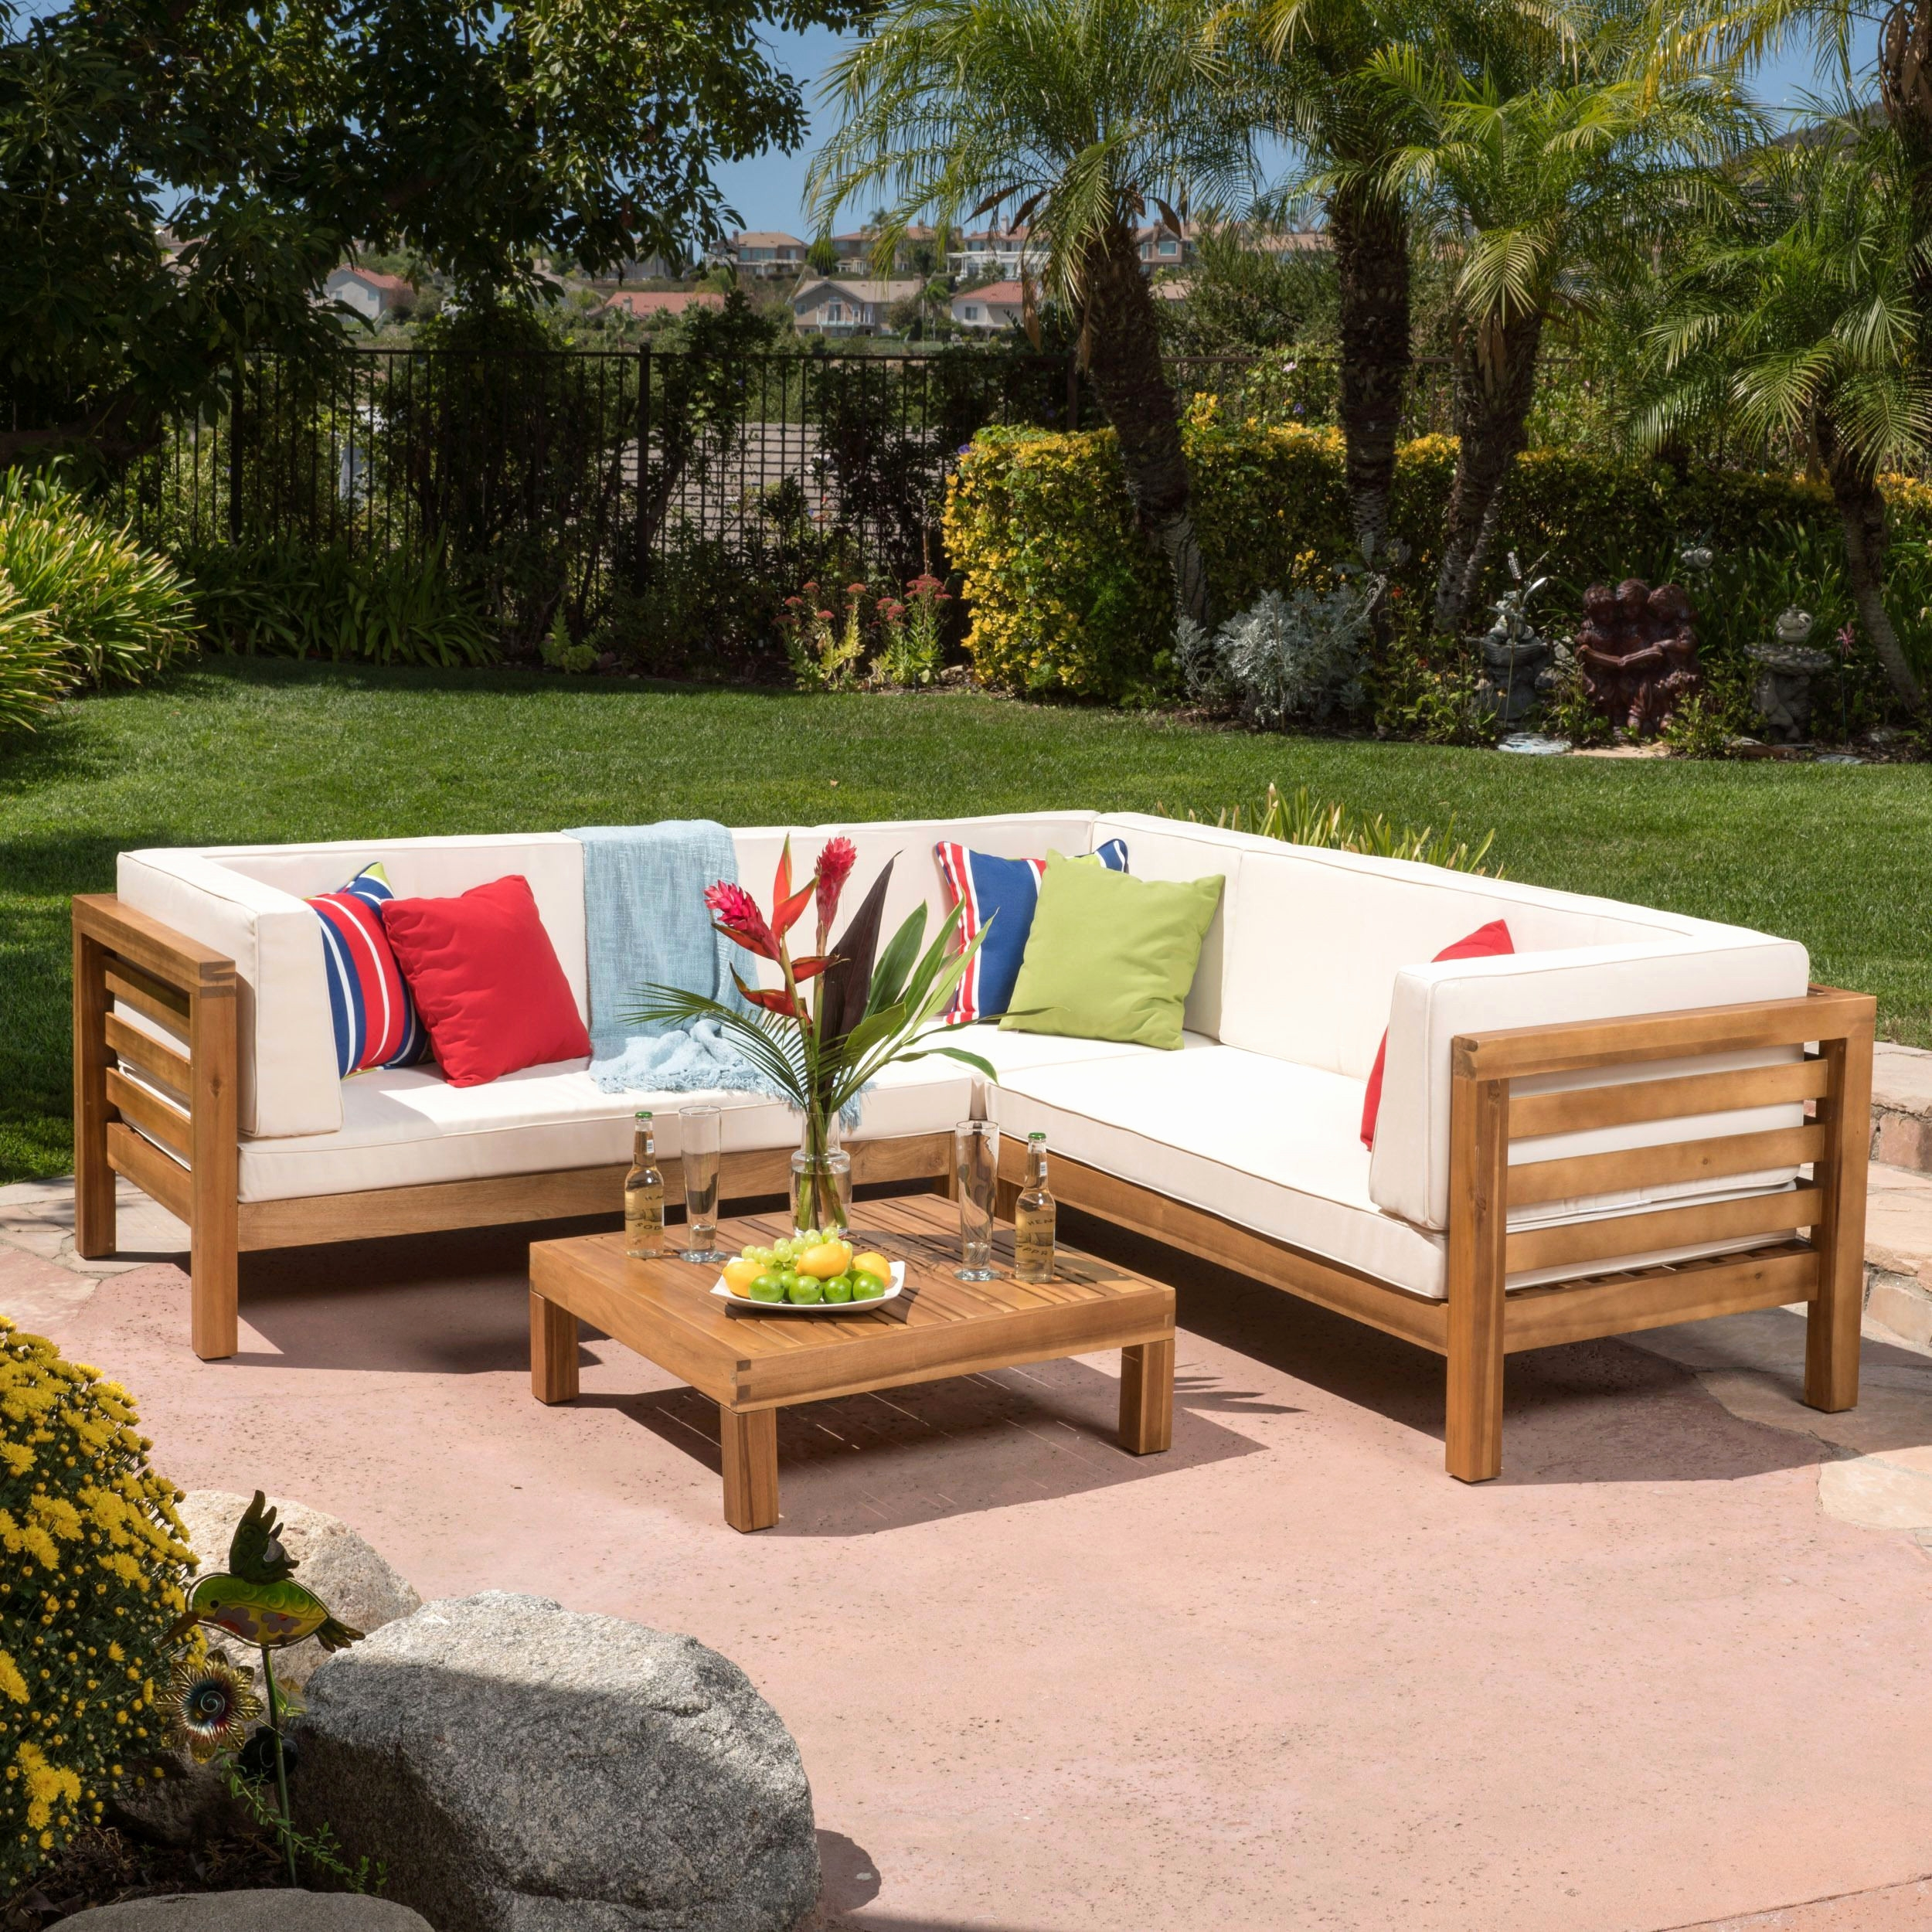 Patio Furniture Craigslist Tampa Awesome Pottery Barn